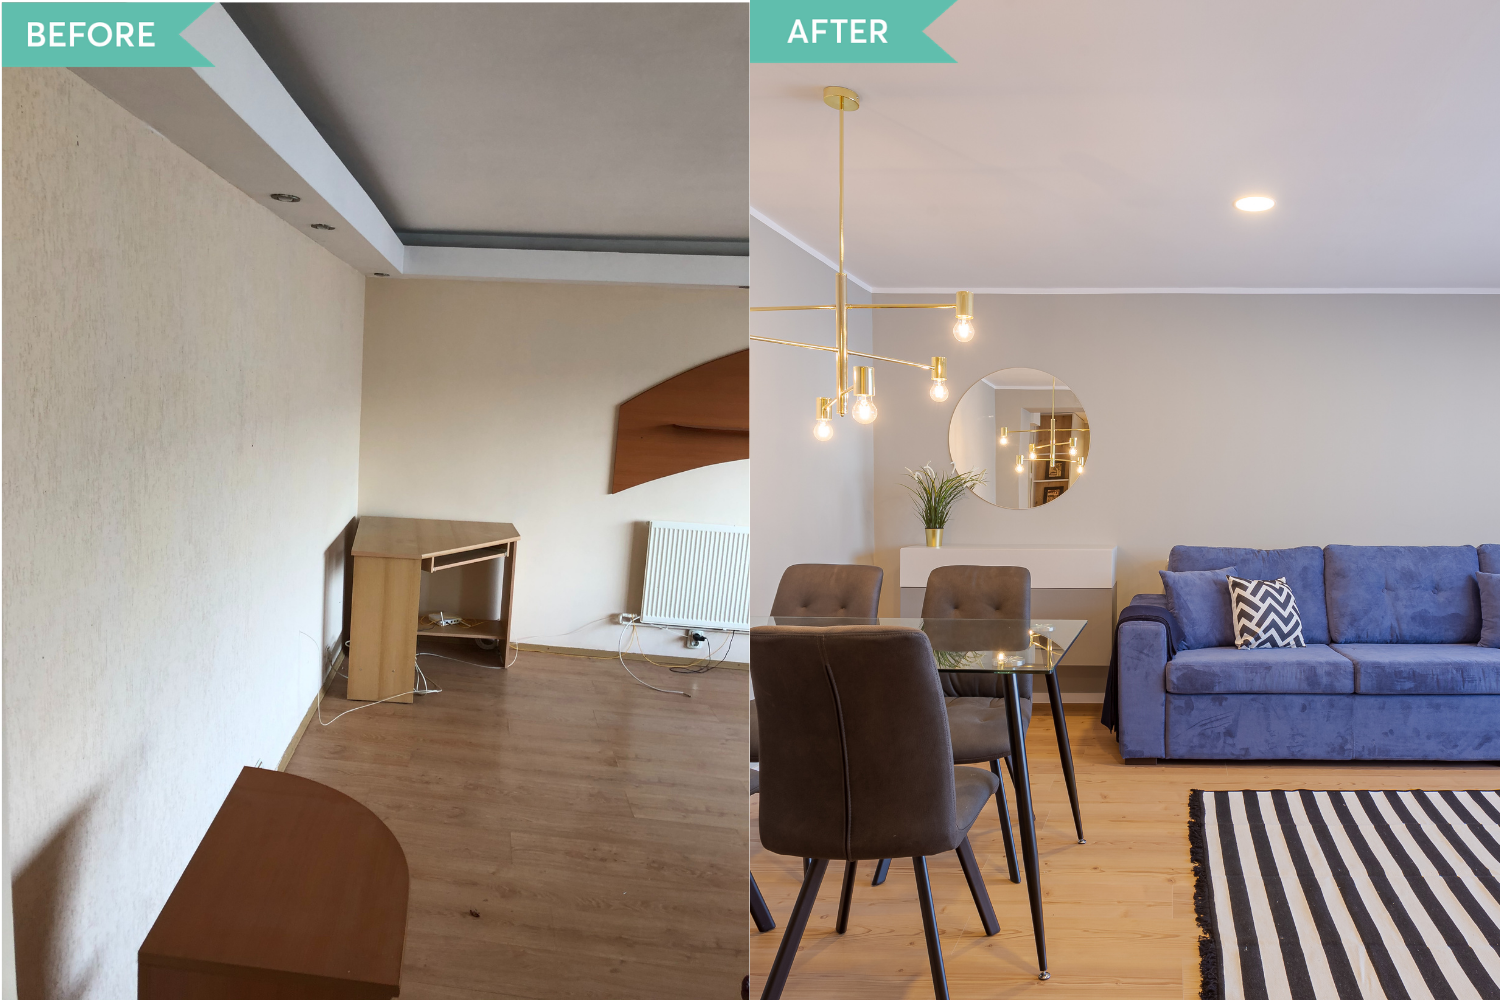 Renovare apartament Aviatiei - before and after _ Arh. Cristiana Zgripcea (5)